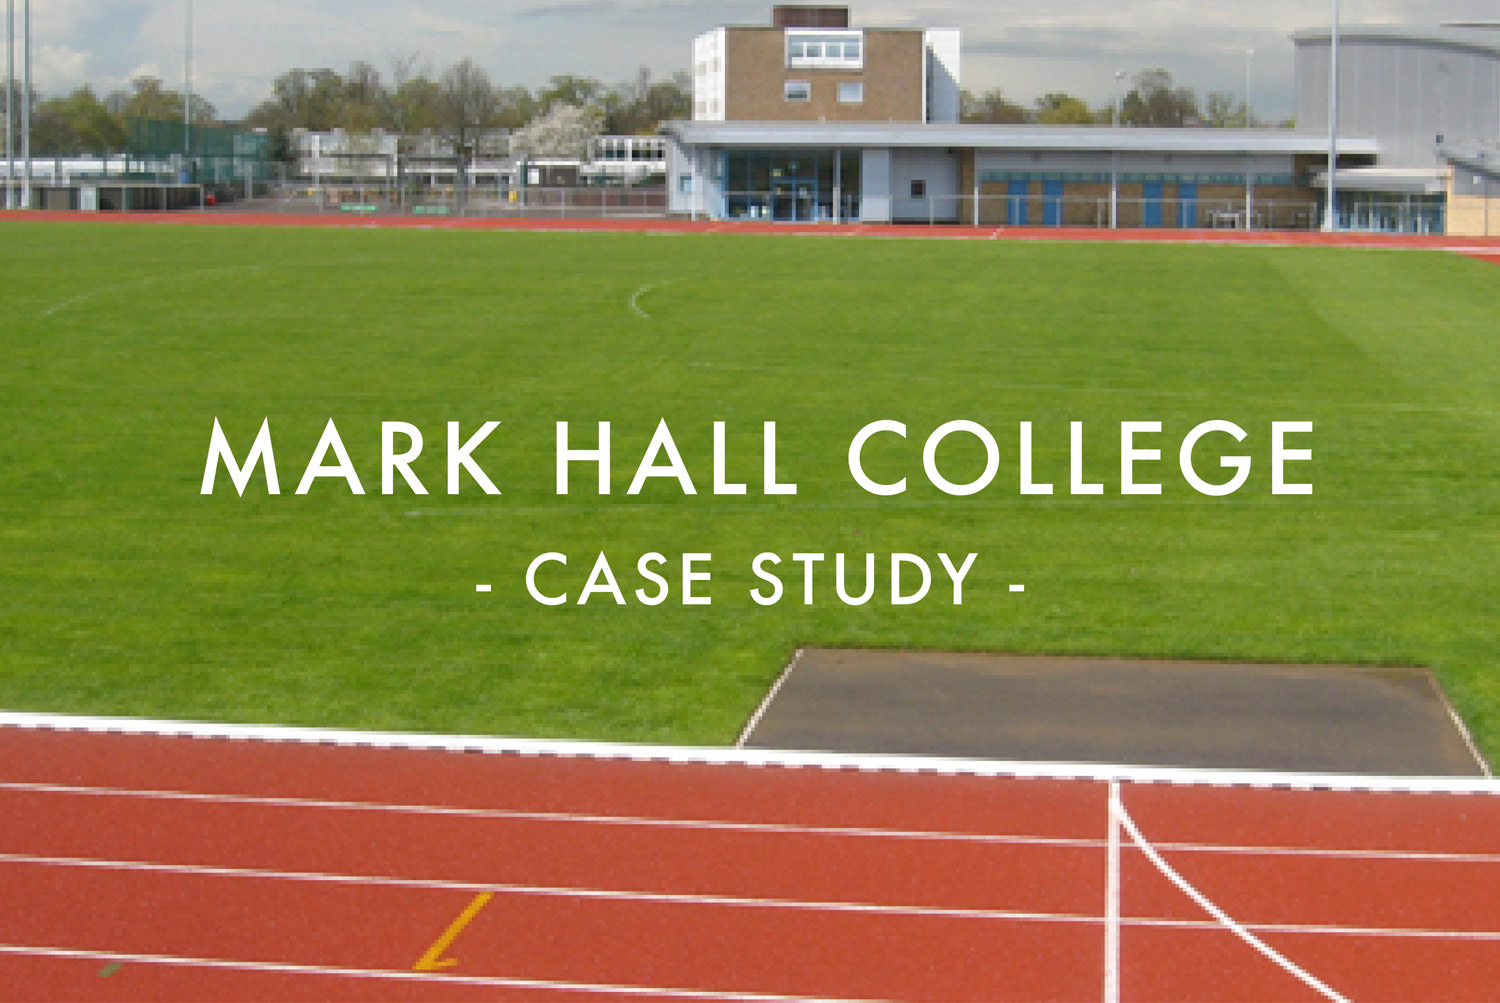 Mark Hall College Case Study